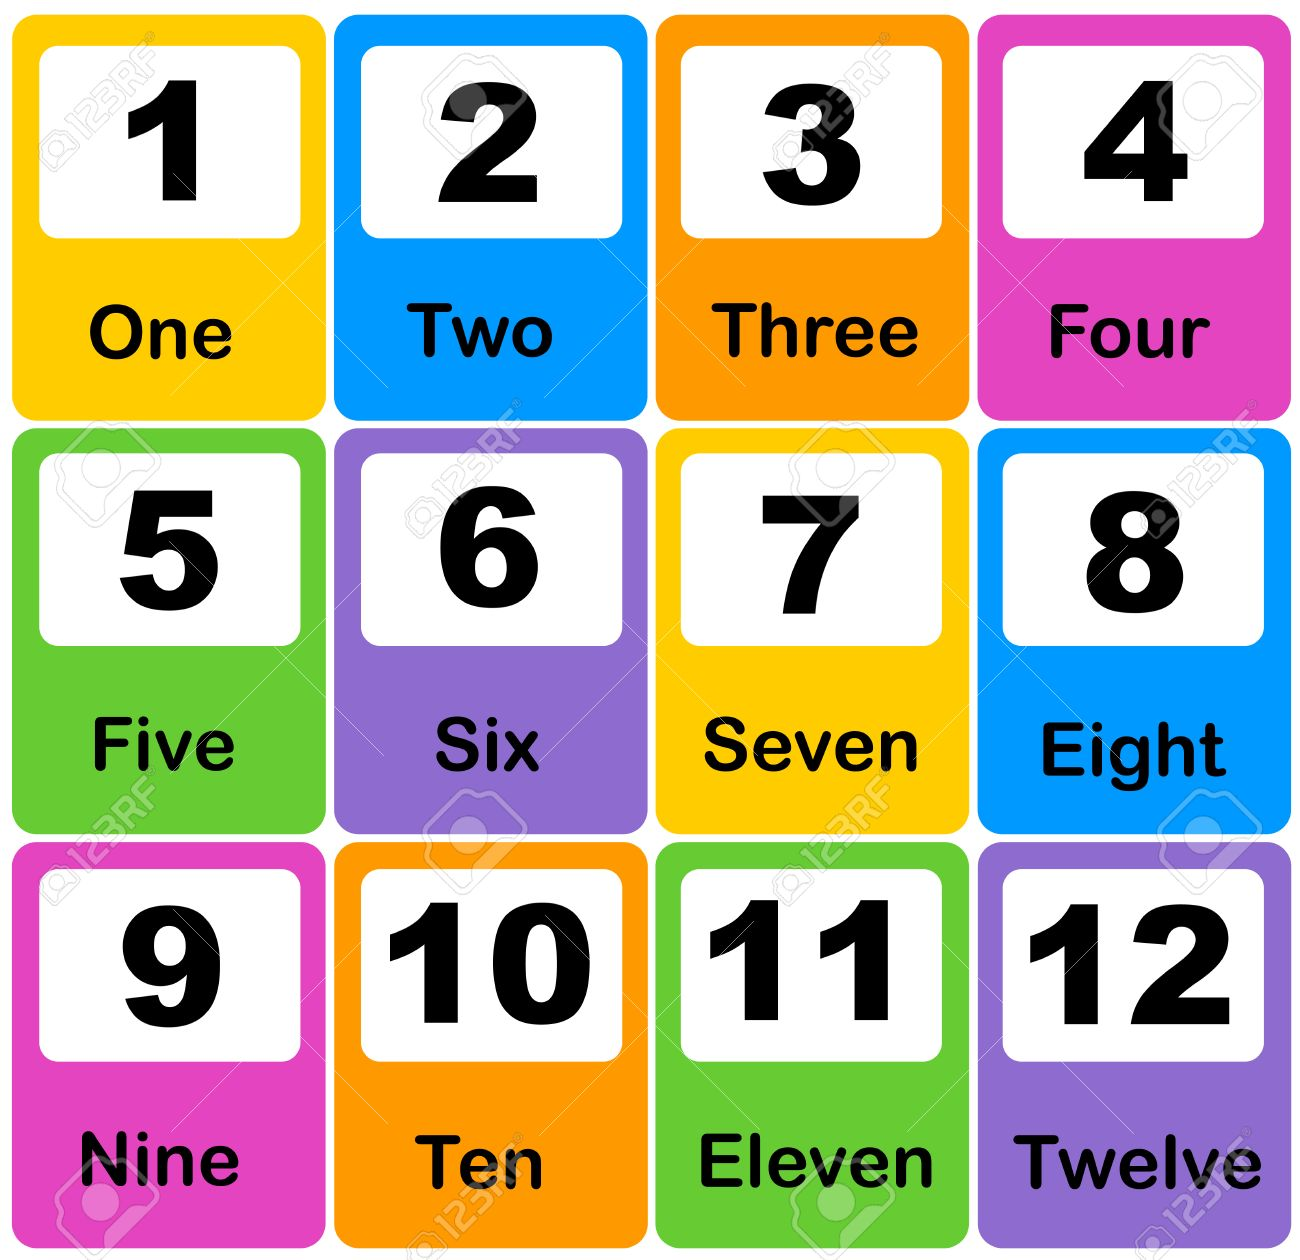 photo regarding Printable Number Cards named Printable range finding out playing cards for preschool, kindergarten small children